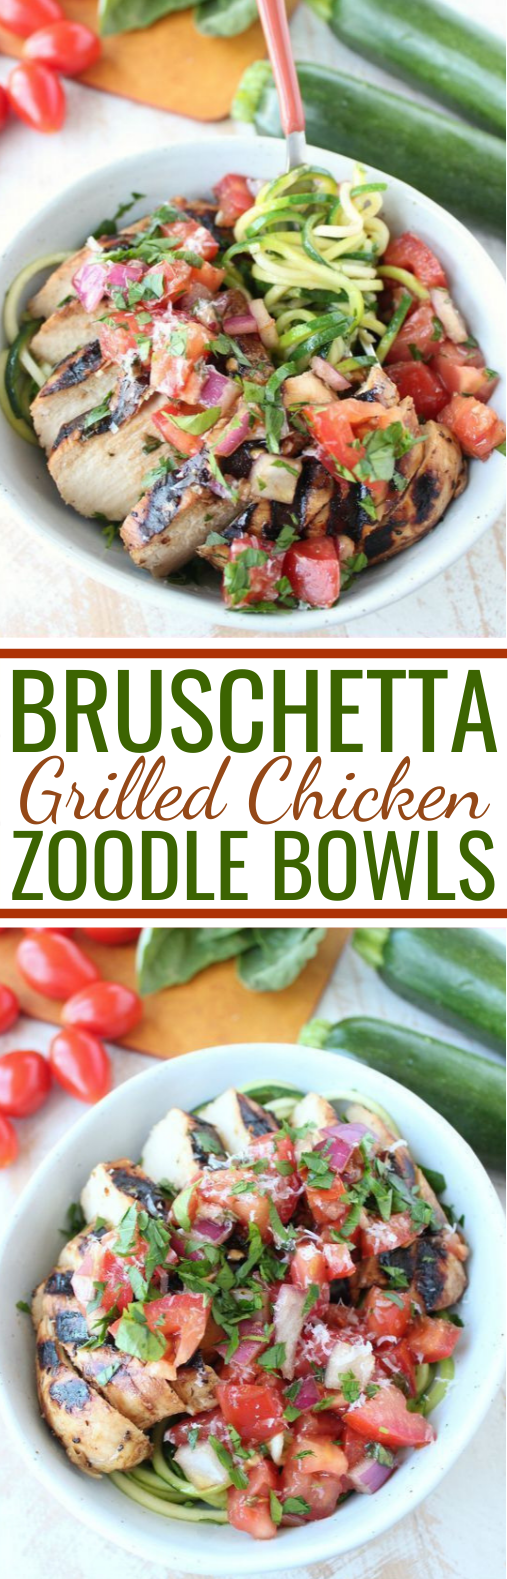 Bruschetta Grilled Chicken Zoodle Bowls #healthy #lowcarb #lunch #keto #glutenfree